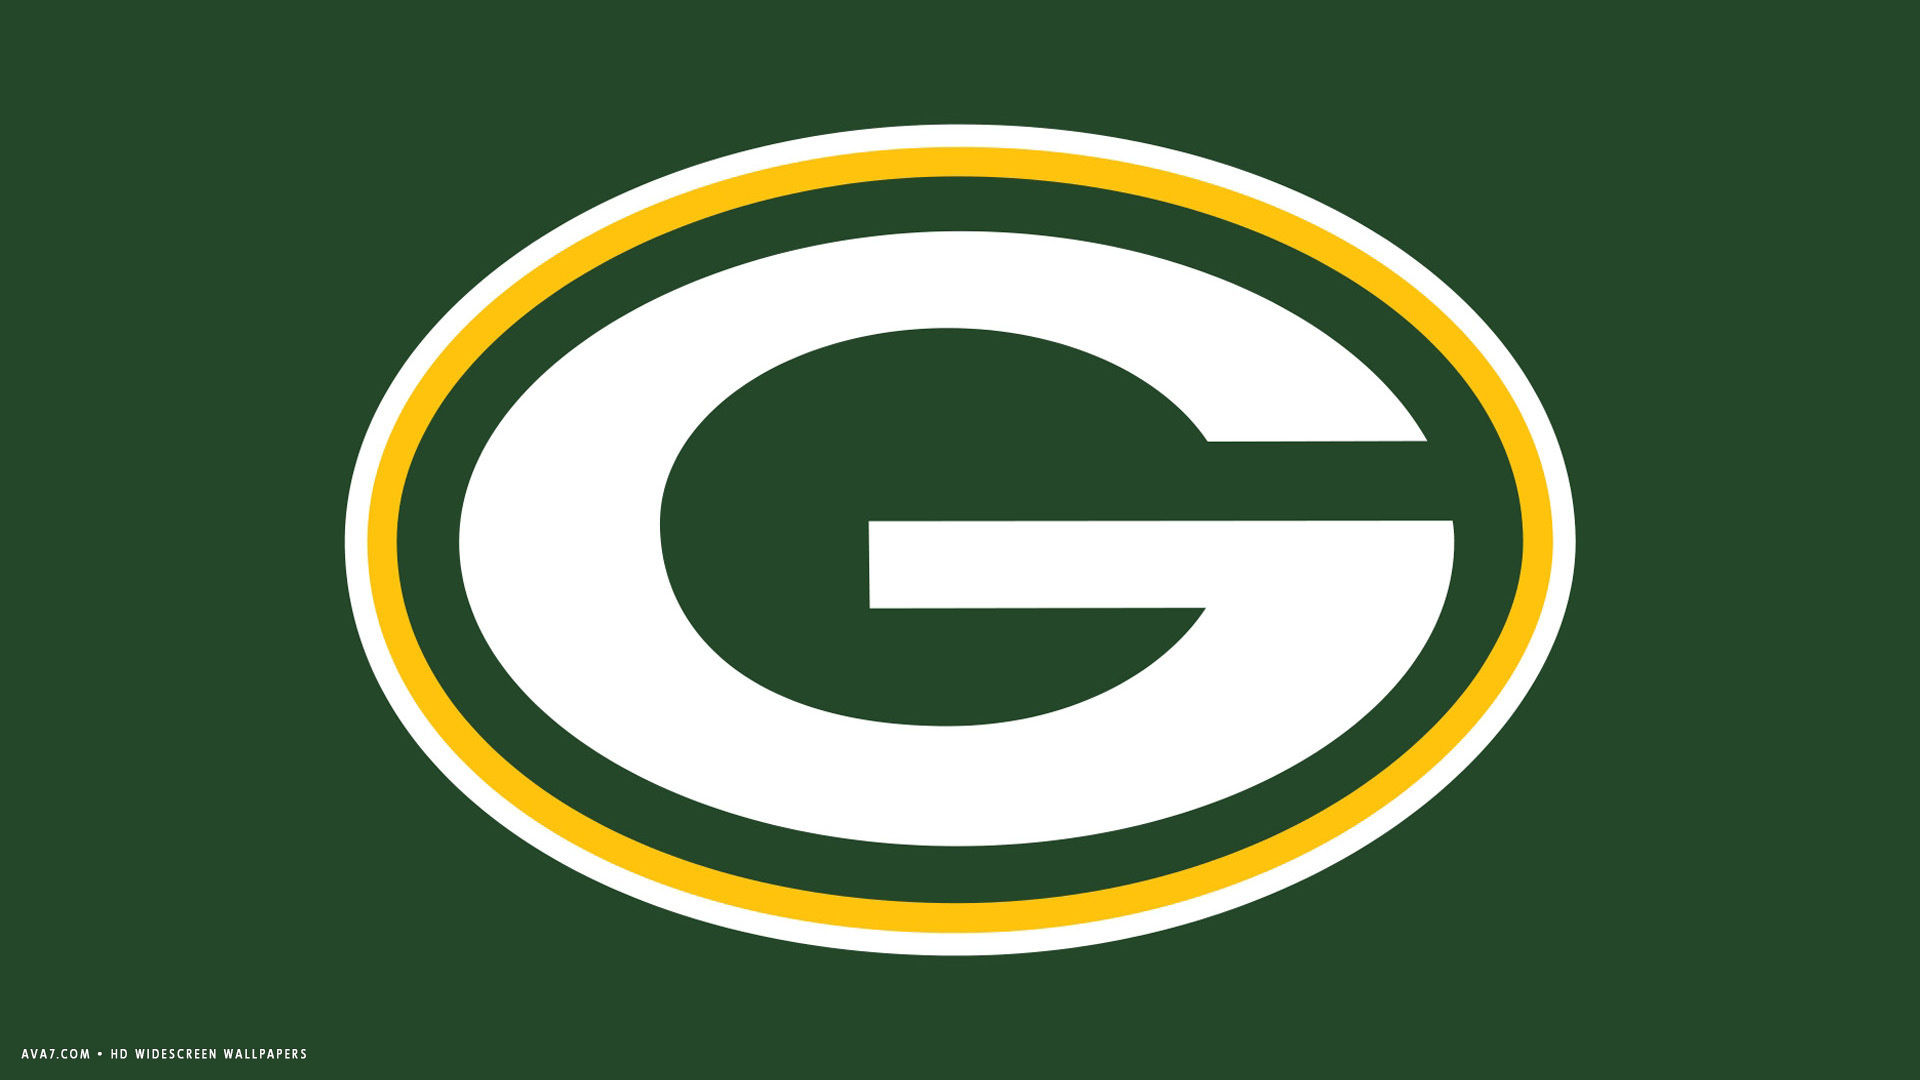 green bay packers 1080p hd widescreen wallpaper american